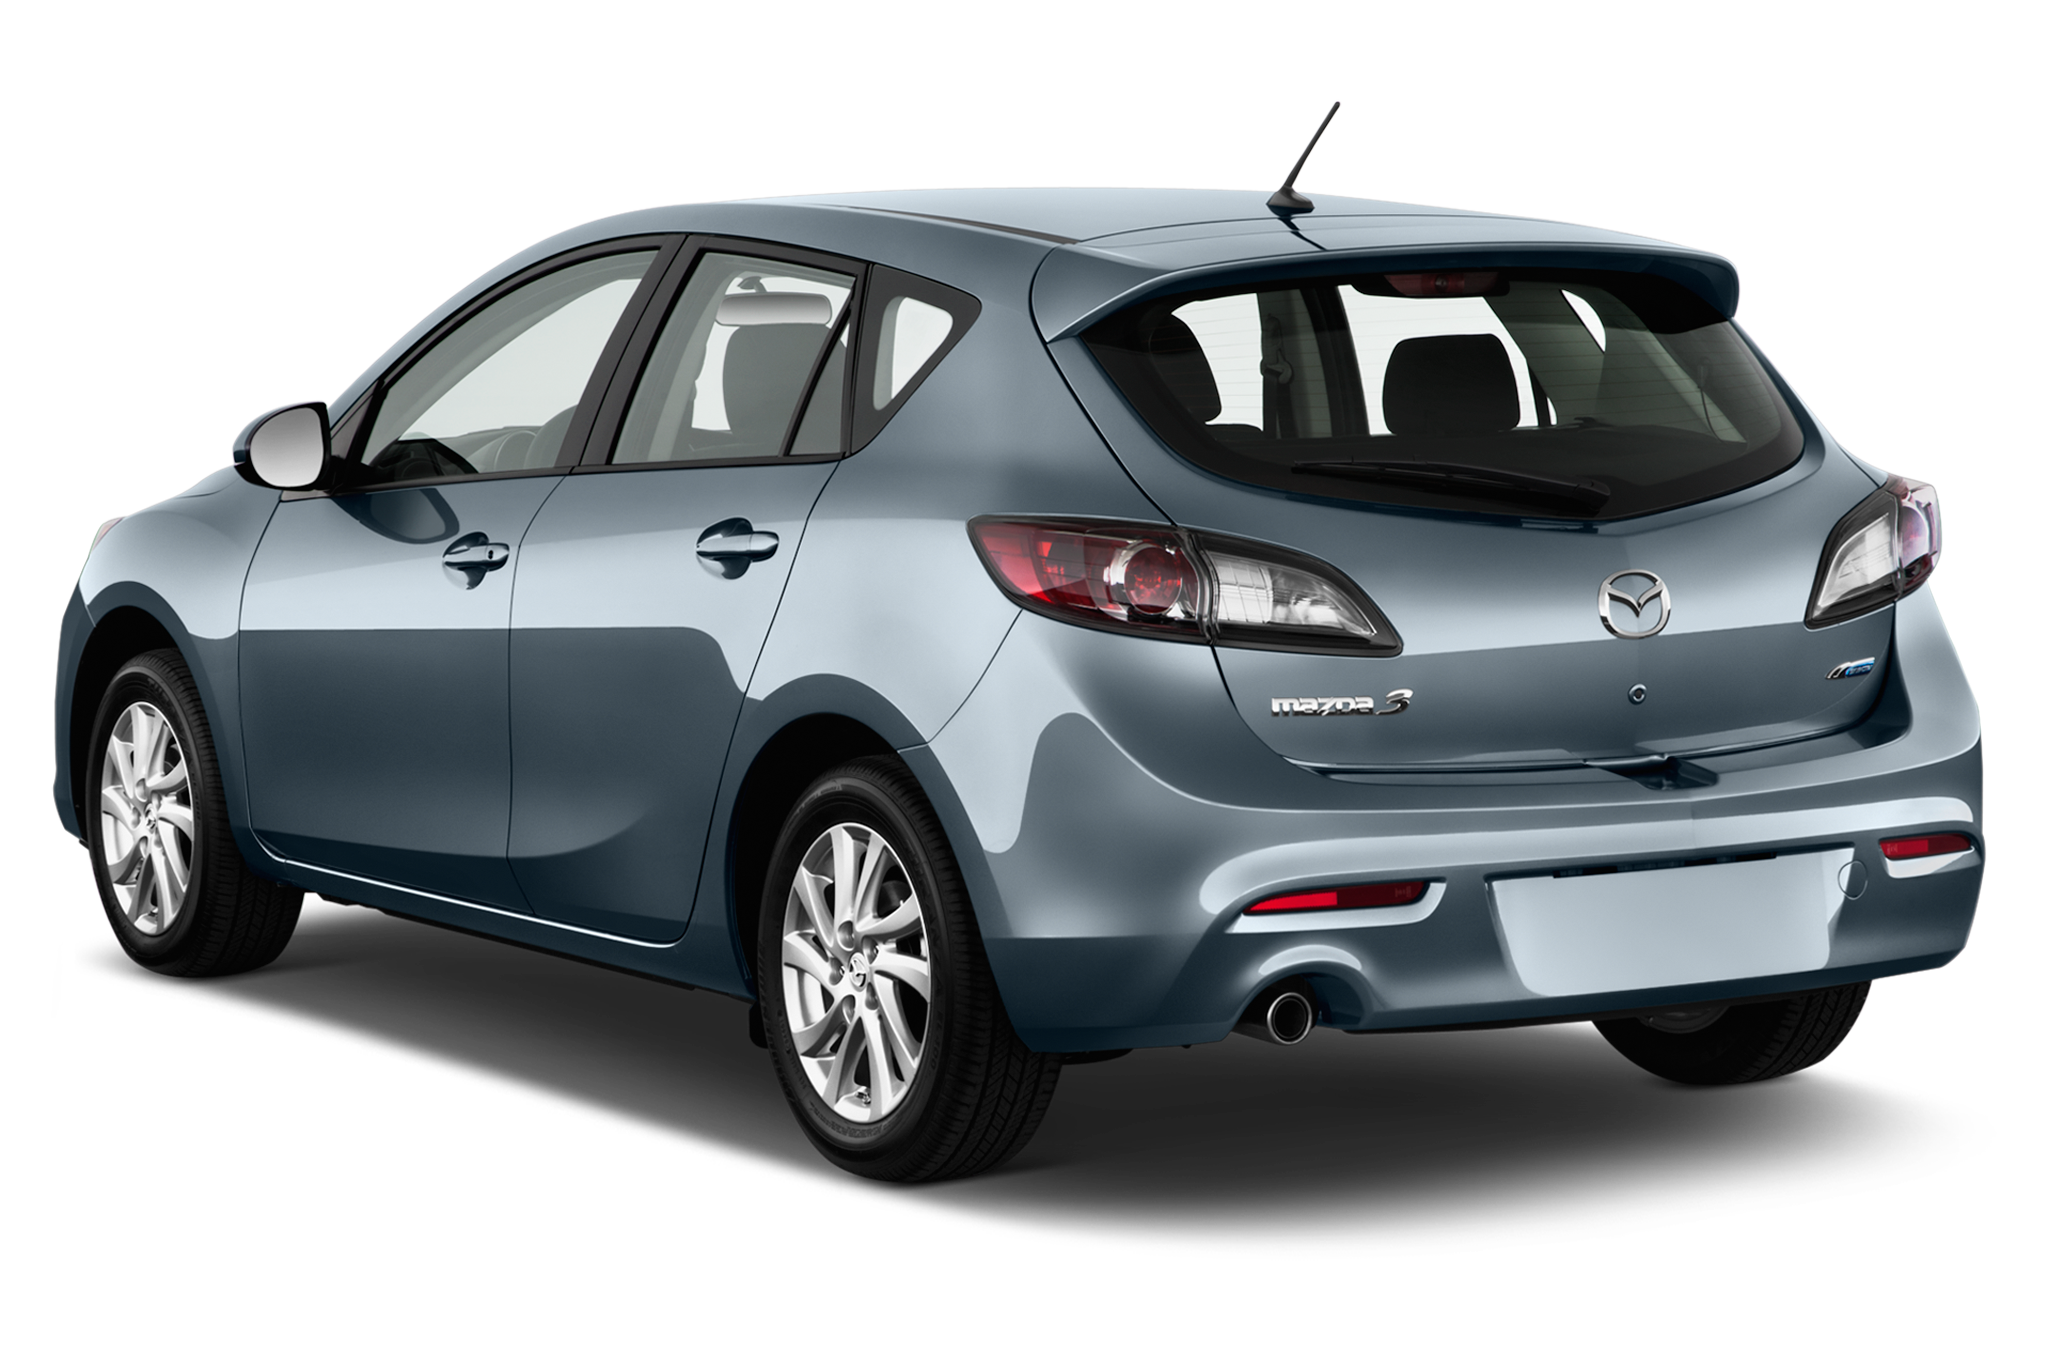 http://st.automobilemag.com/uploads/sites/10/2015/11/2012-mazda-mazda3-s-touring-5-door-at-hatchback-angular-rear.png